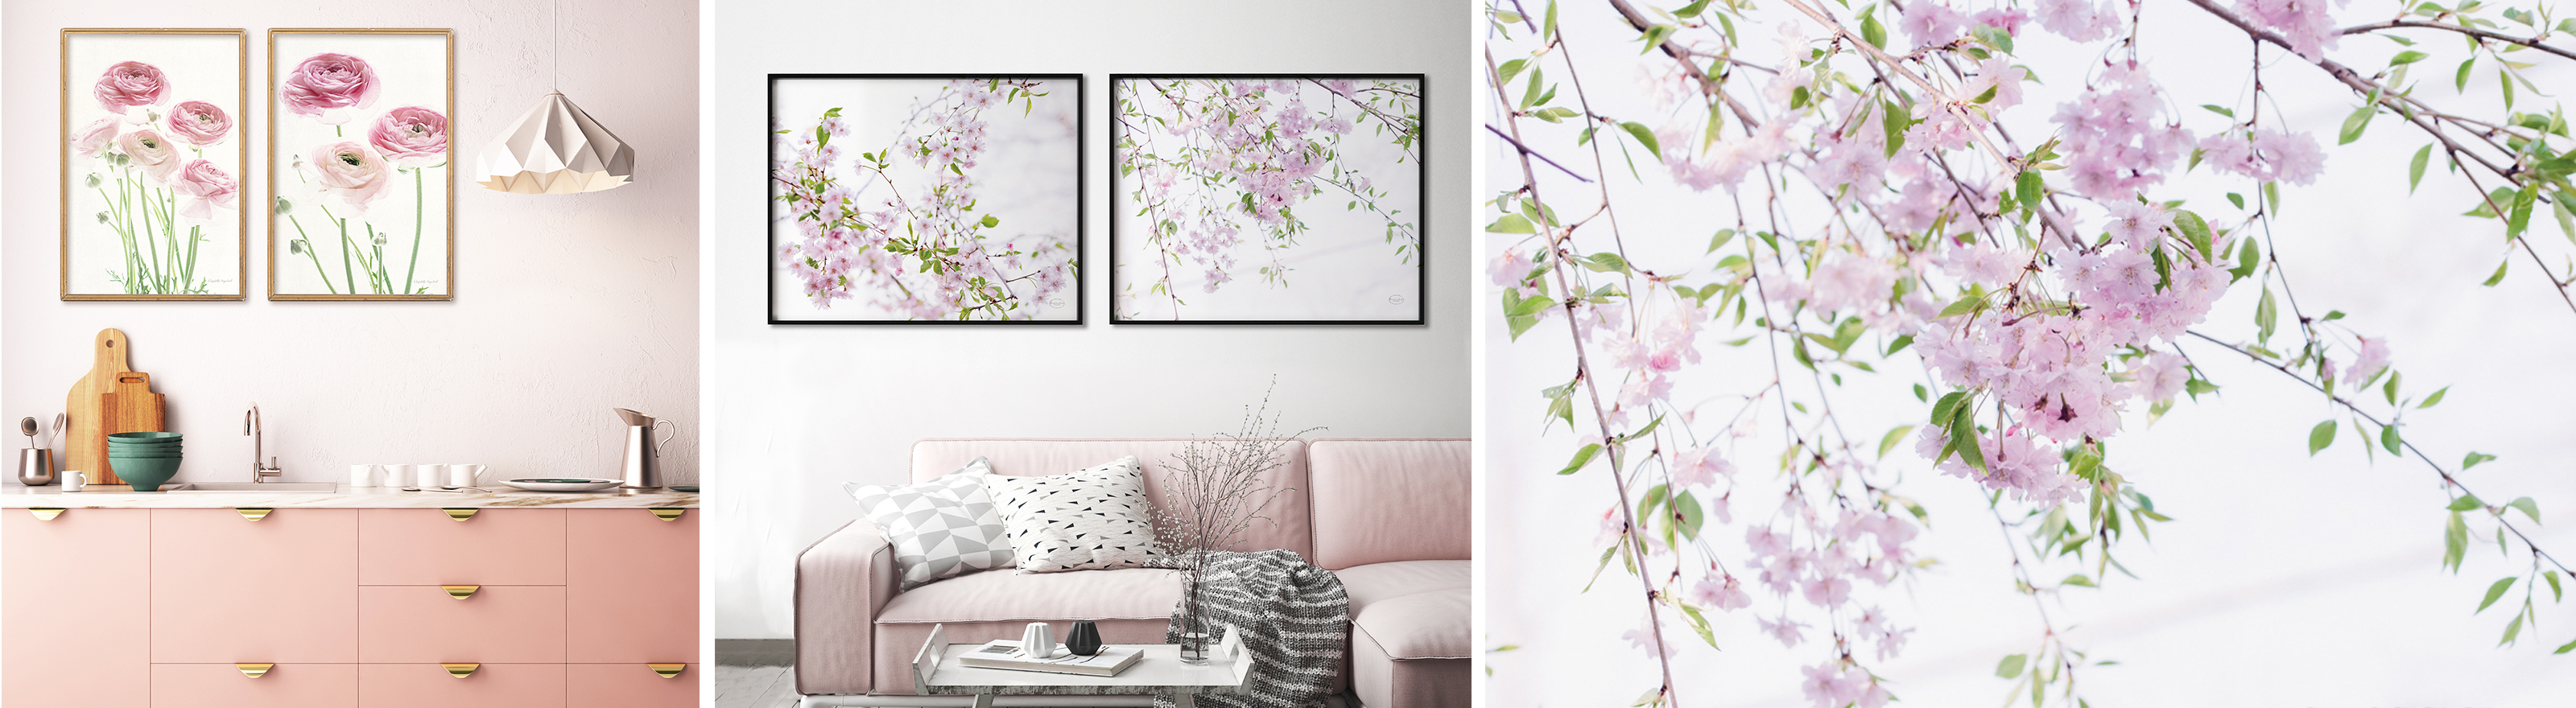 Floral Photography for the Home